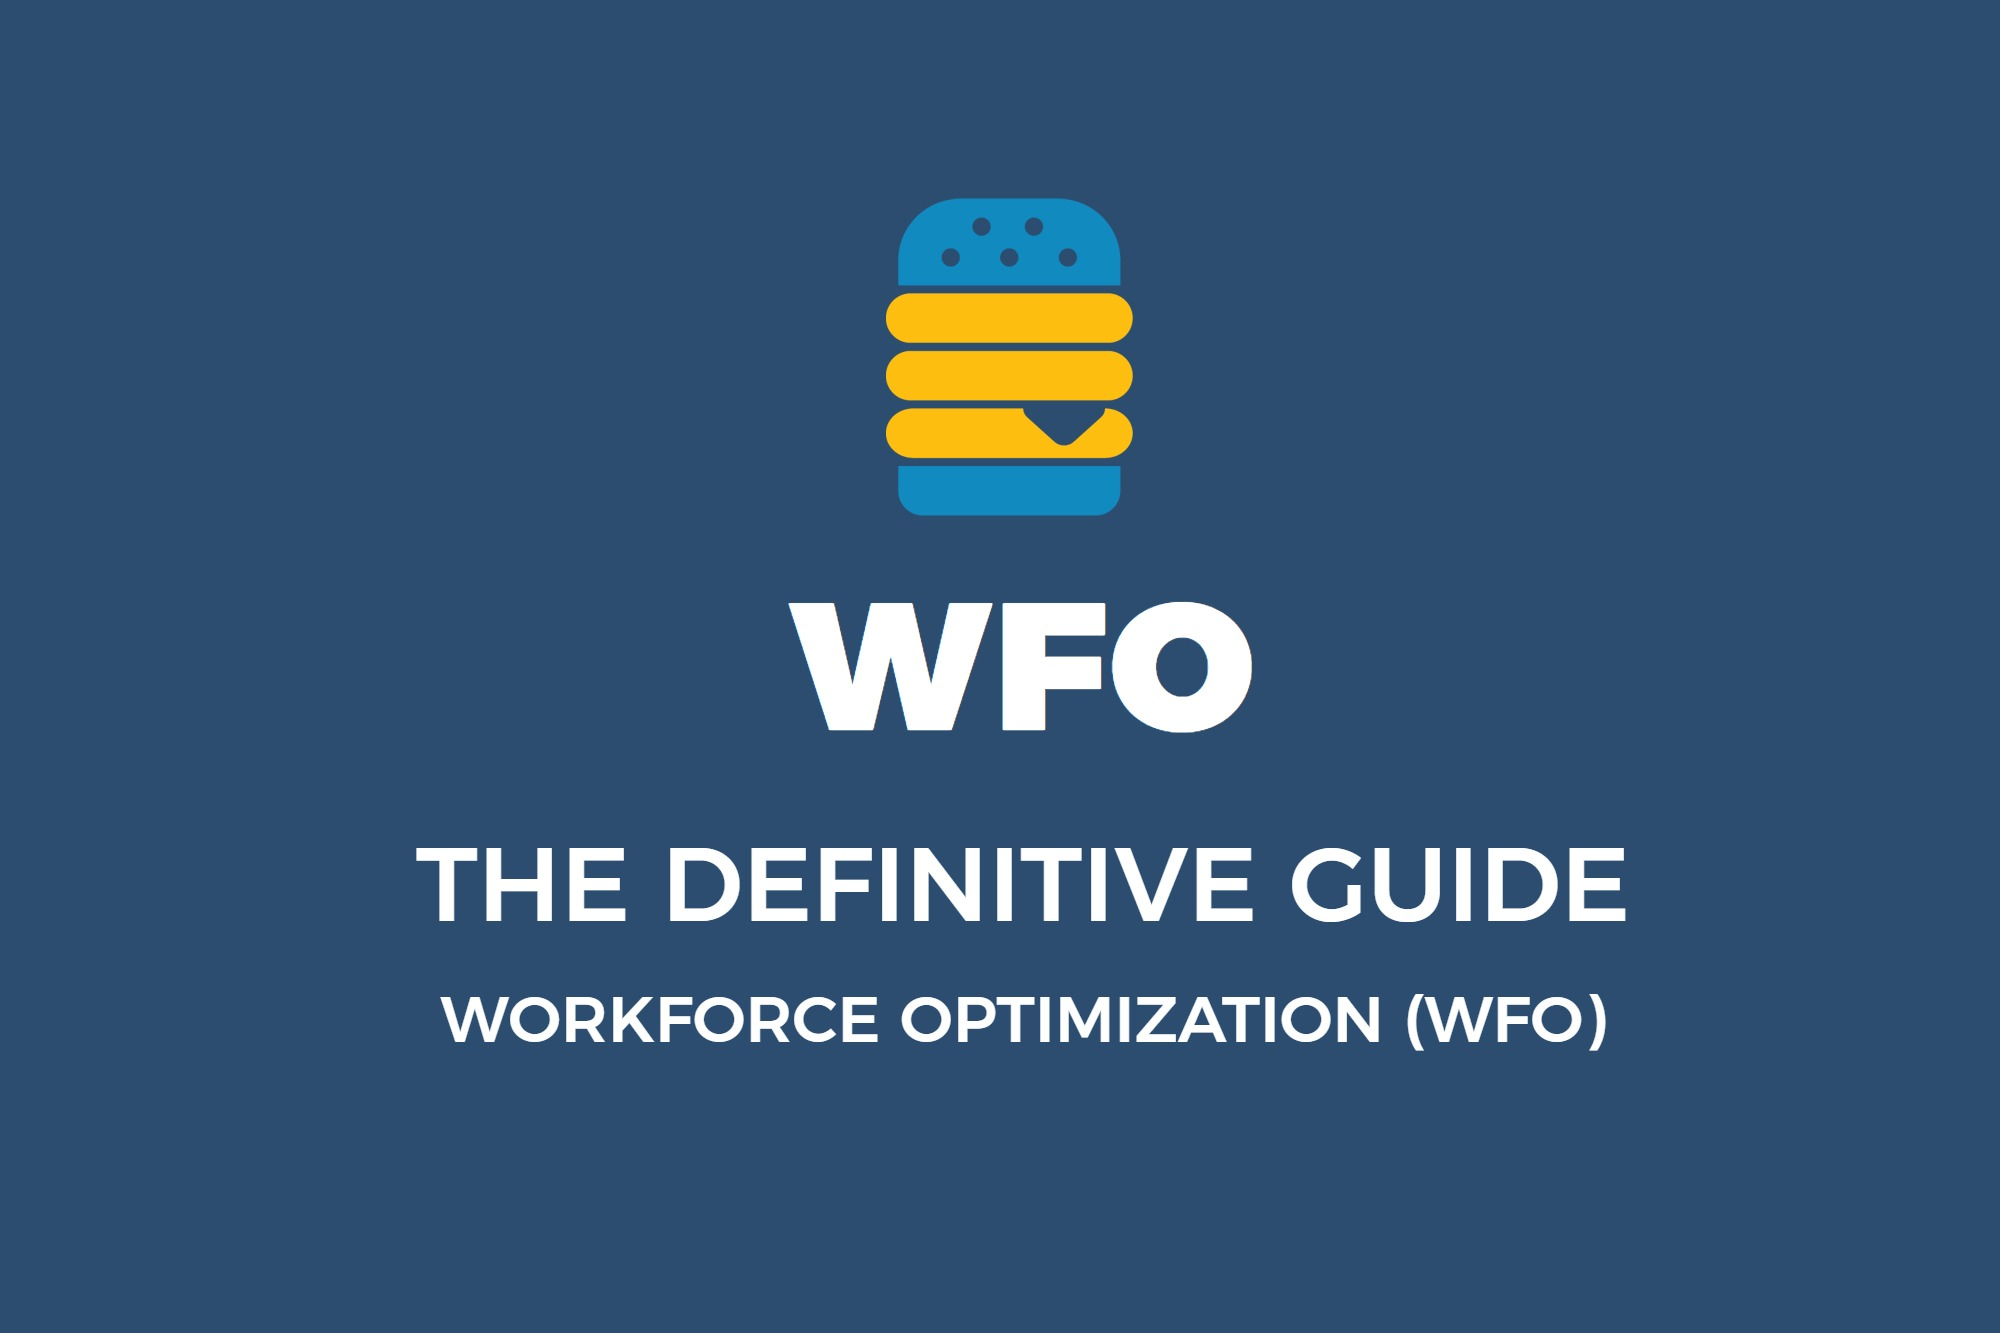 WFO (Workforce Optimization) – The Definitive Guide